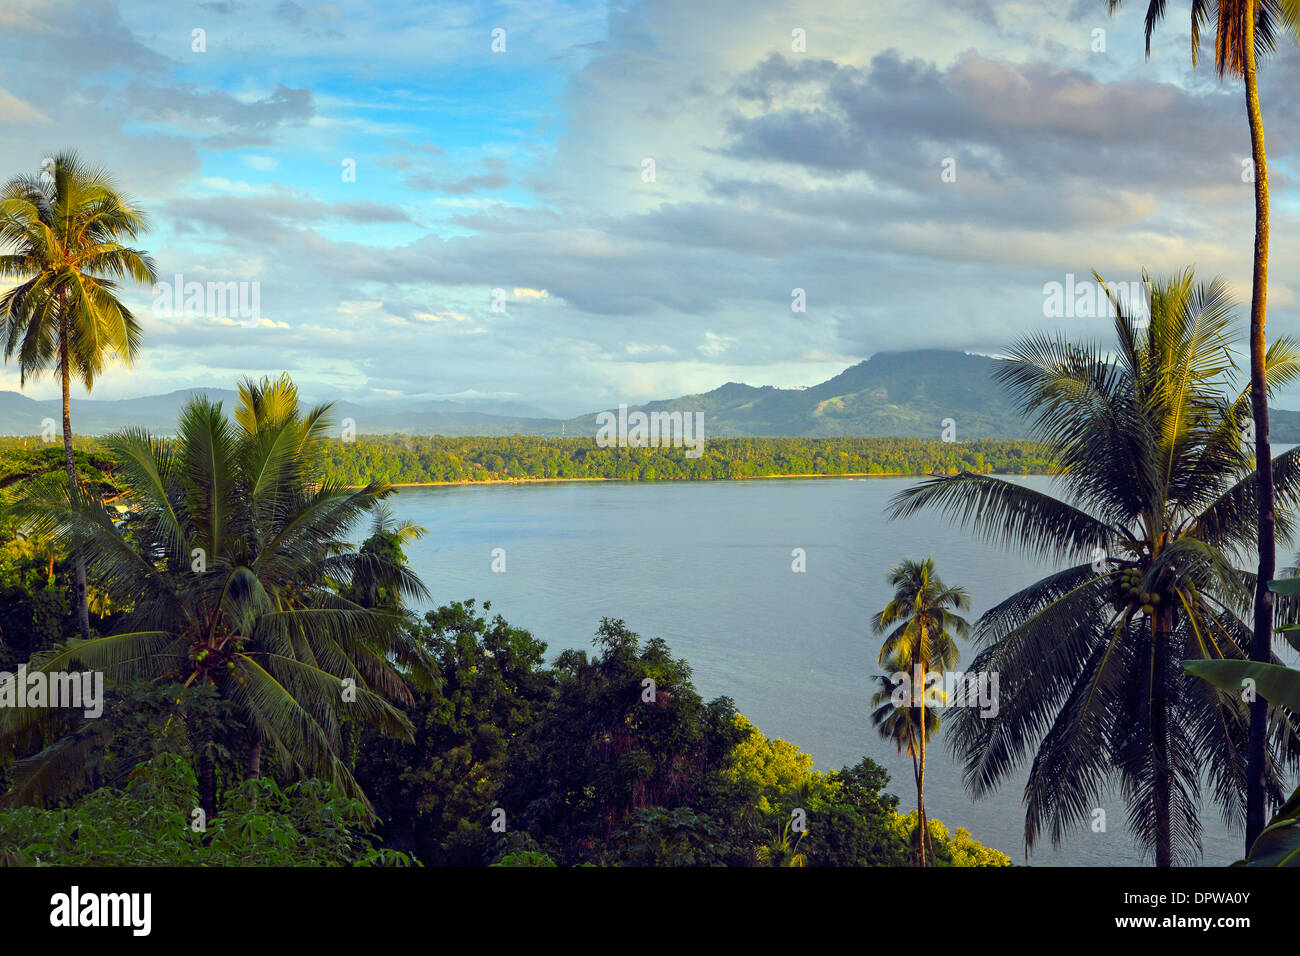 Scenic view of Bunaken Island coastline in north Sulawesi - Stock Image